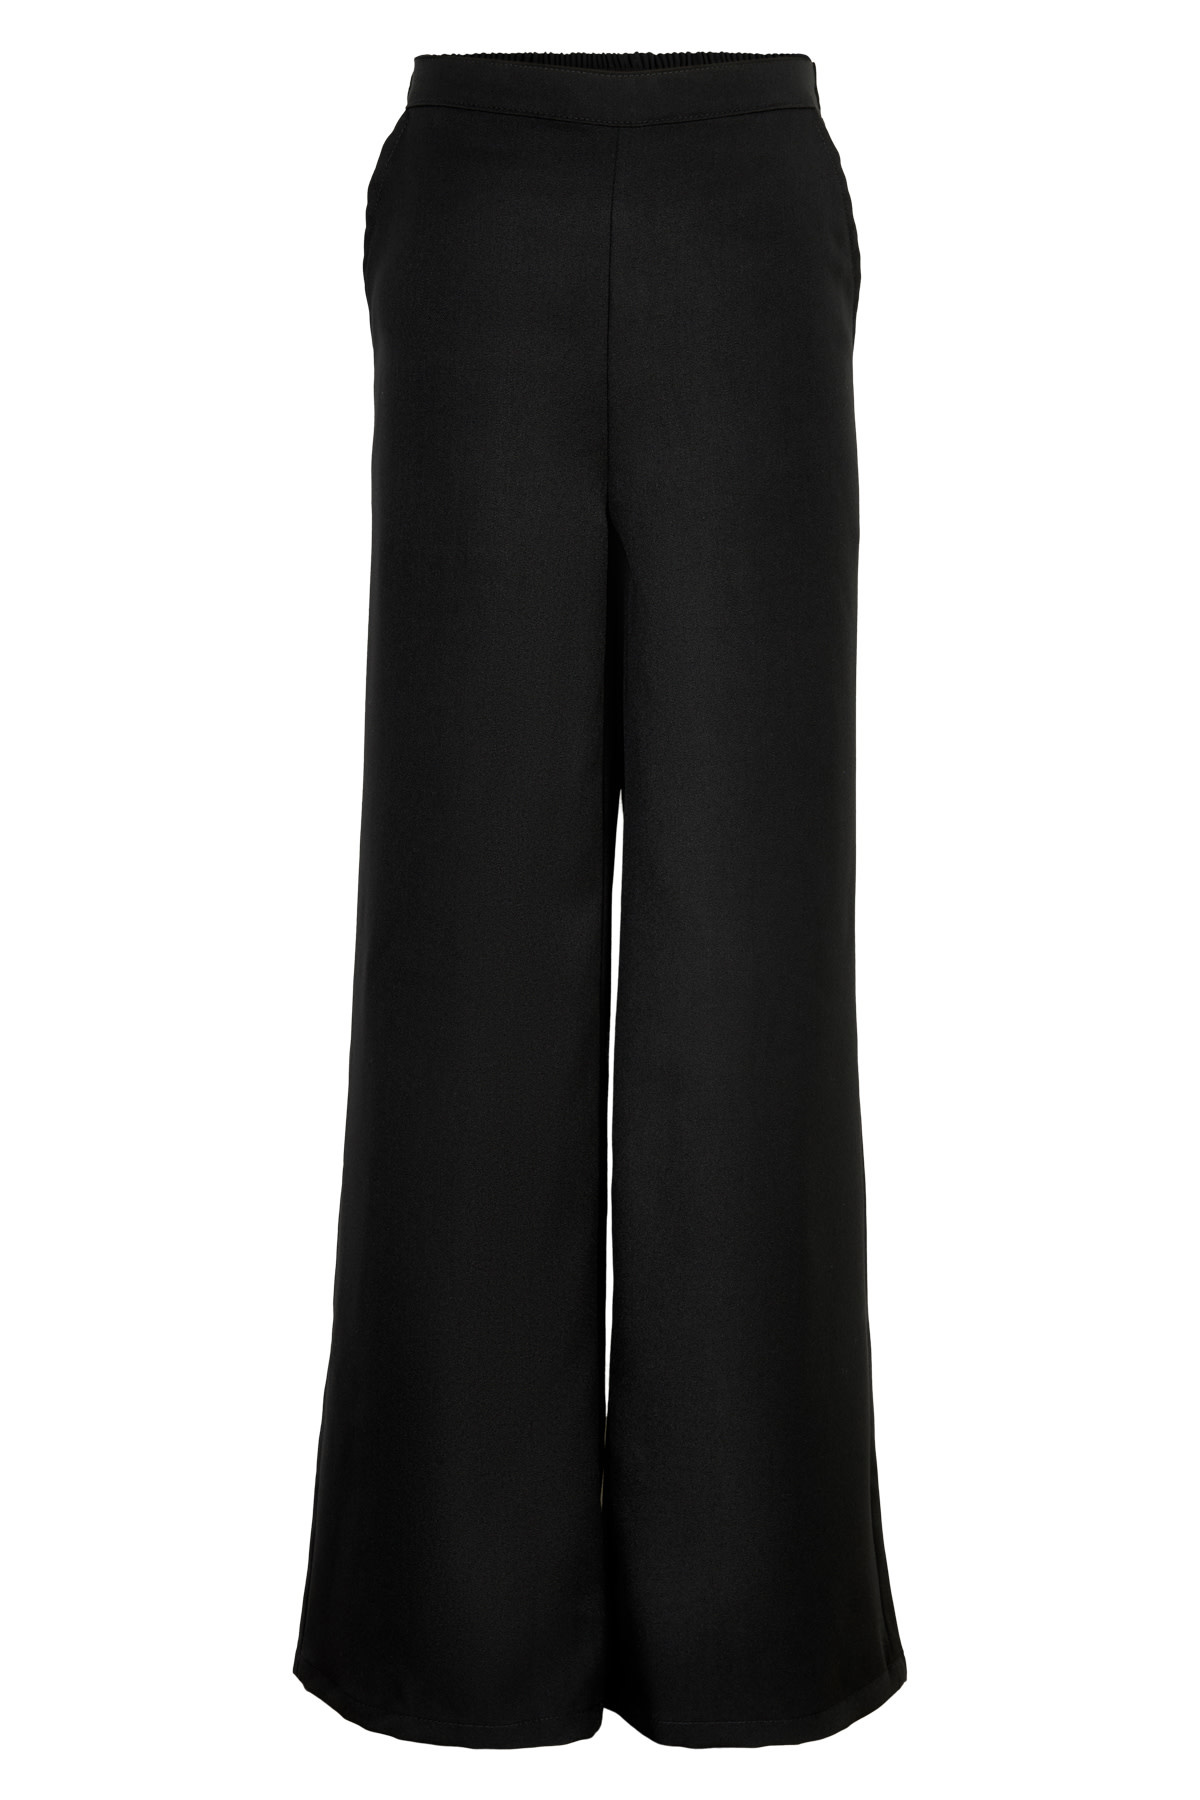 Cost - Bart Kylie Wide Pants